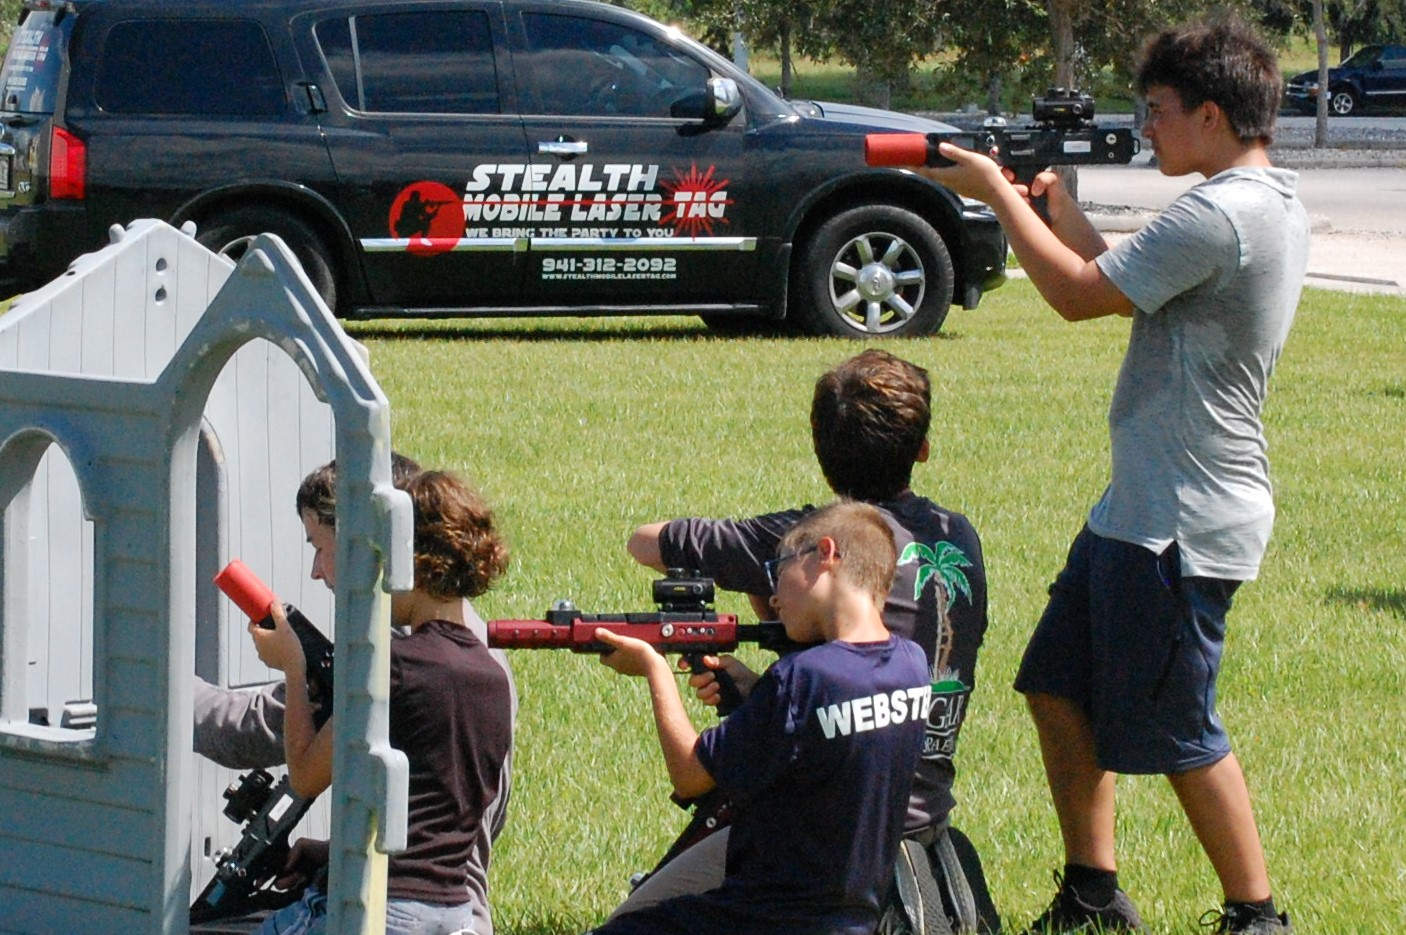 Mobile Laser Tag in Sarasota, FL (21)